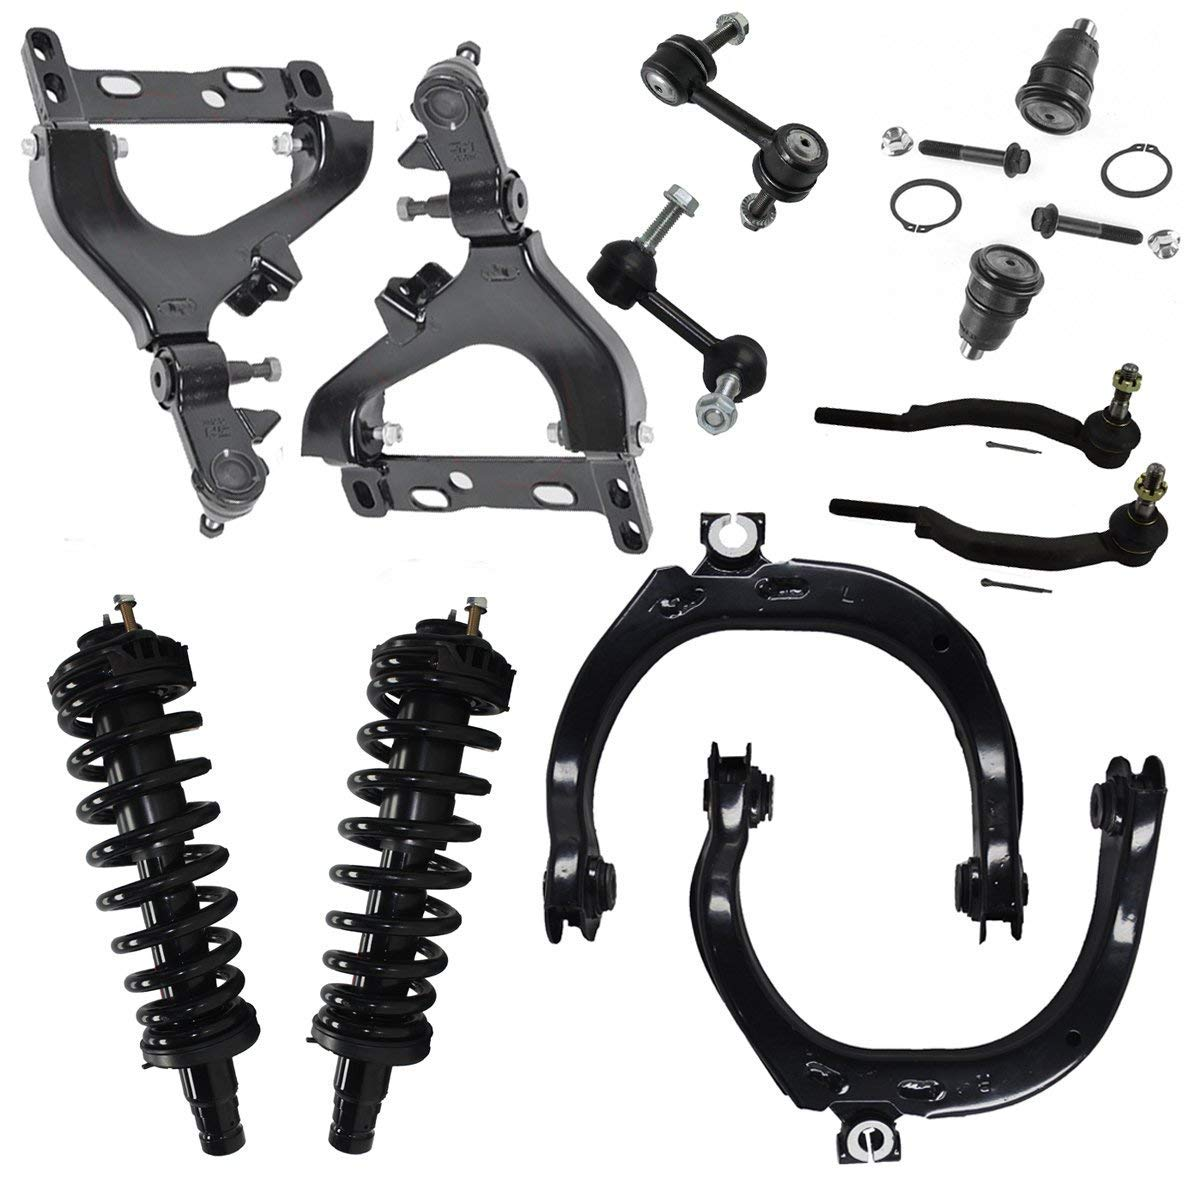 Upper Lower Control Arm w//Ball Joint Sway Bar and Outer Tie Rod Kit for 2002 Chevy Trailblazer EXT GMC Envoy XL Olds Bravada- Models with 14mm Tie Rod Threads ONLY Detroit Axle 12pc Front Strut